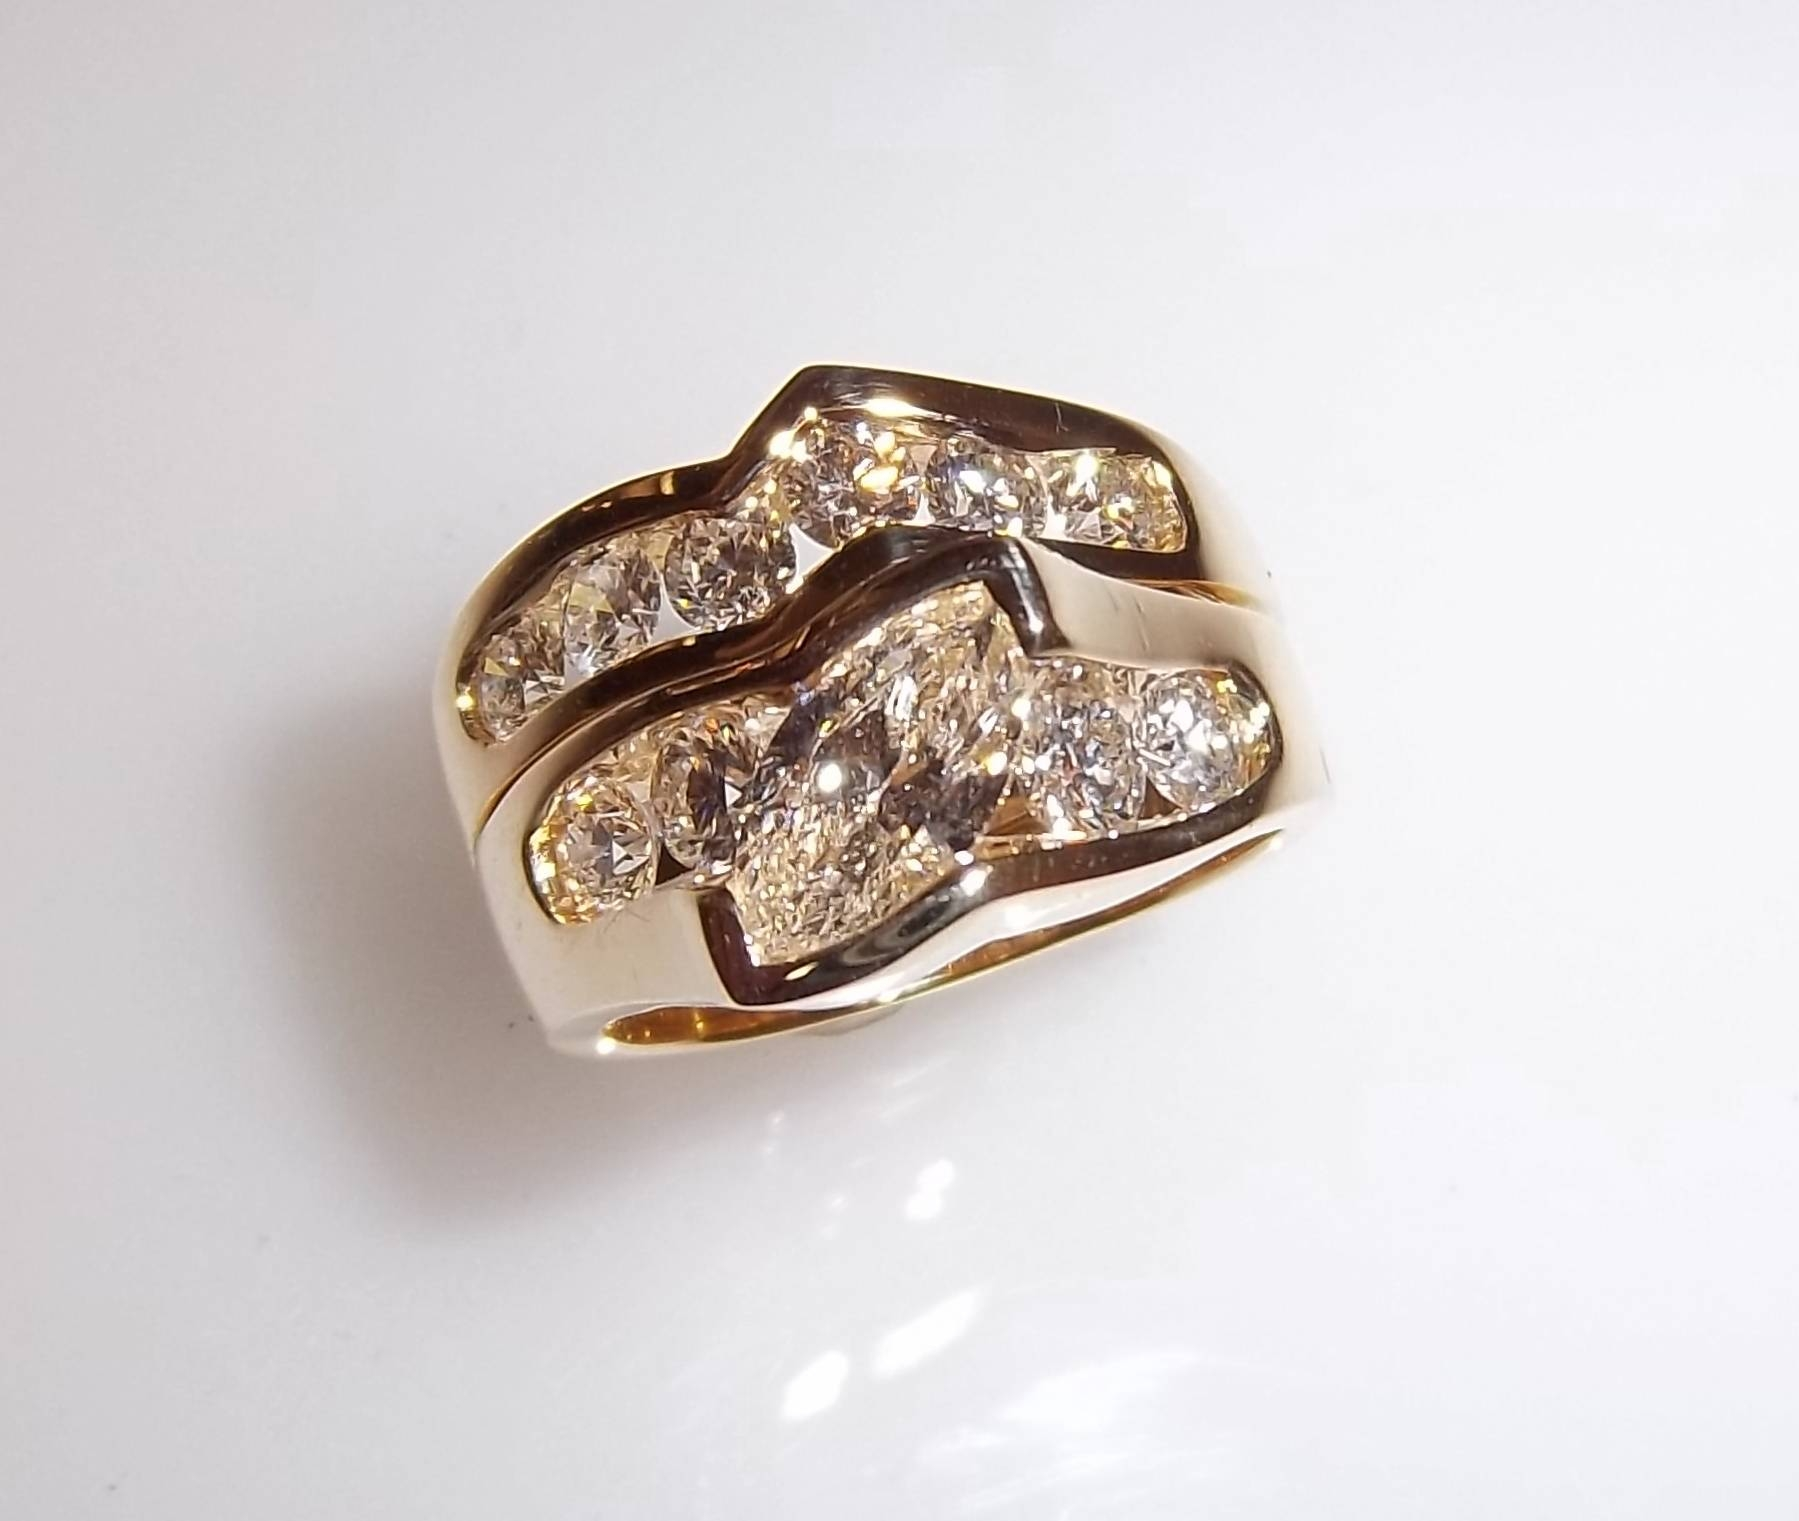 Wedding Anniversary Rings For Her | Wedding Ideas Pertaining To Most Popular 5 Year Wedding Anniversary Rings (View 11 of 25)